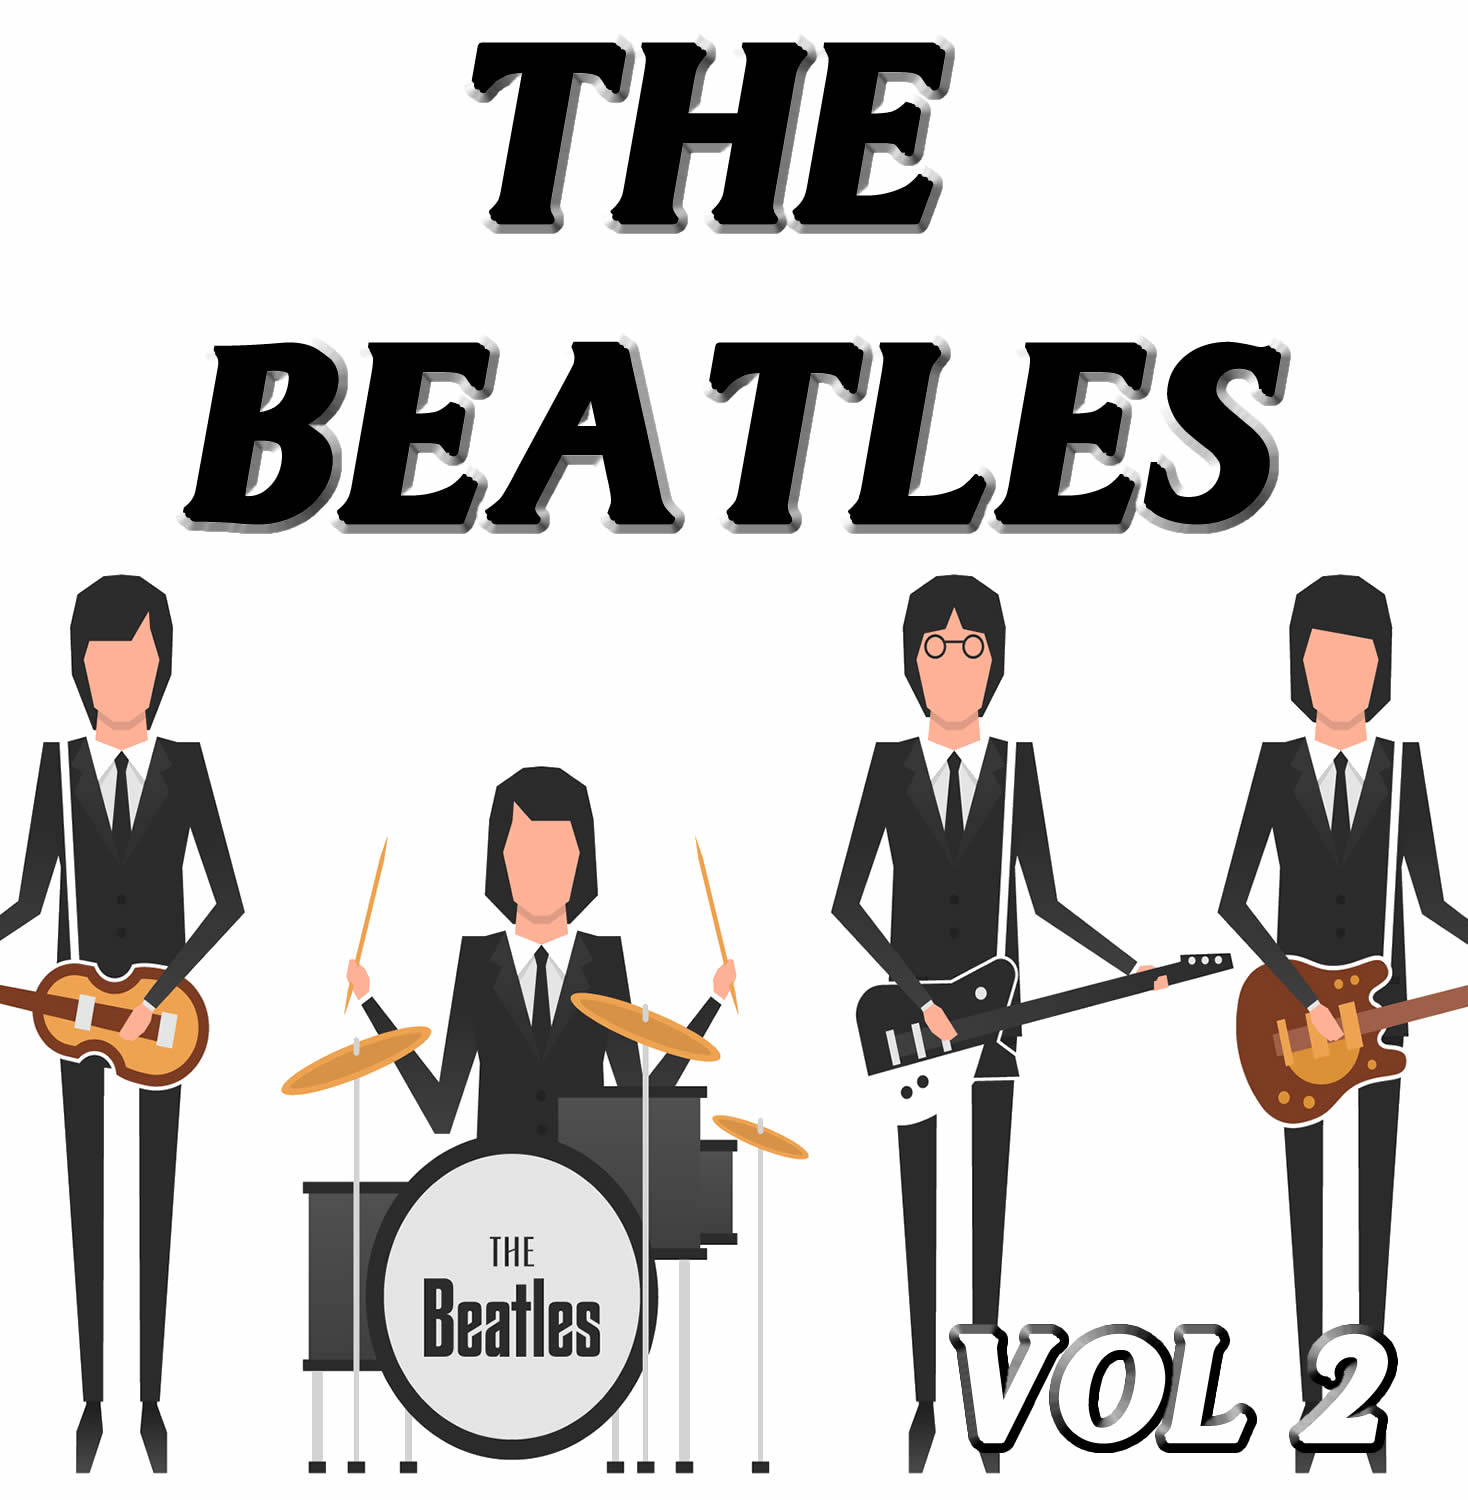 Vocal-Star Beatles Hits vol2